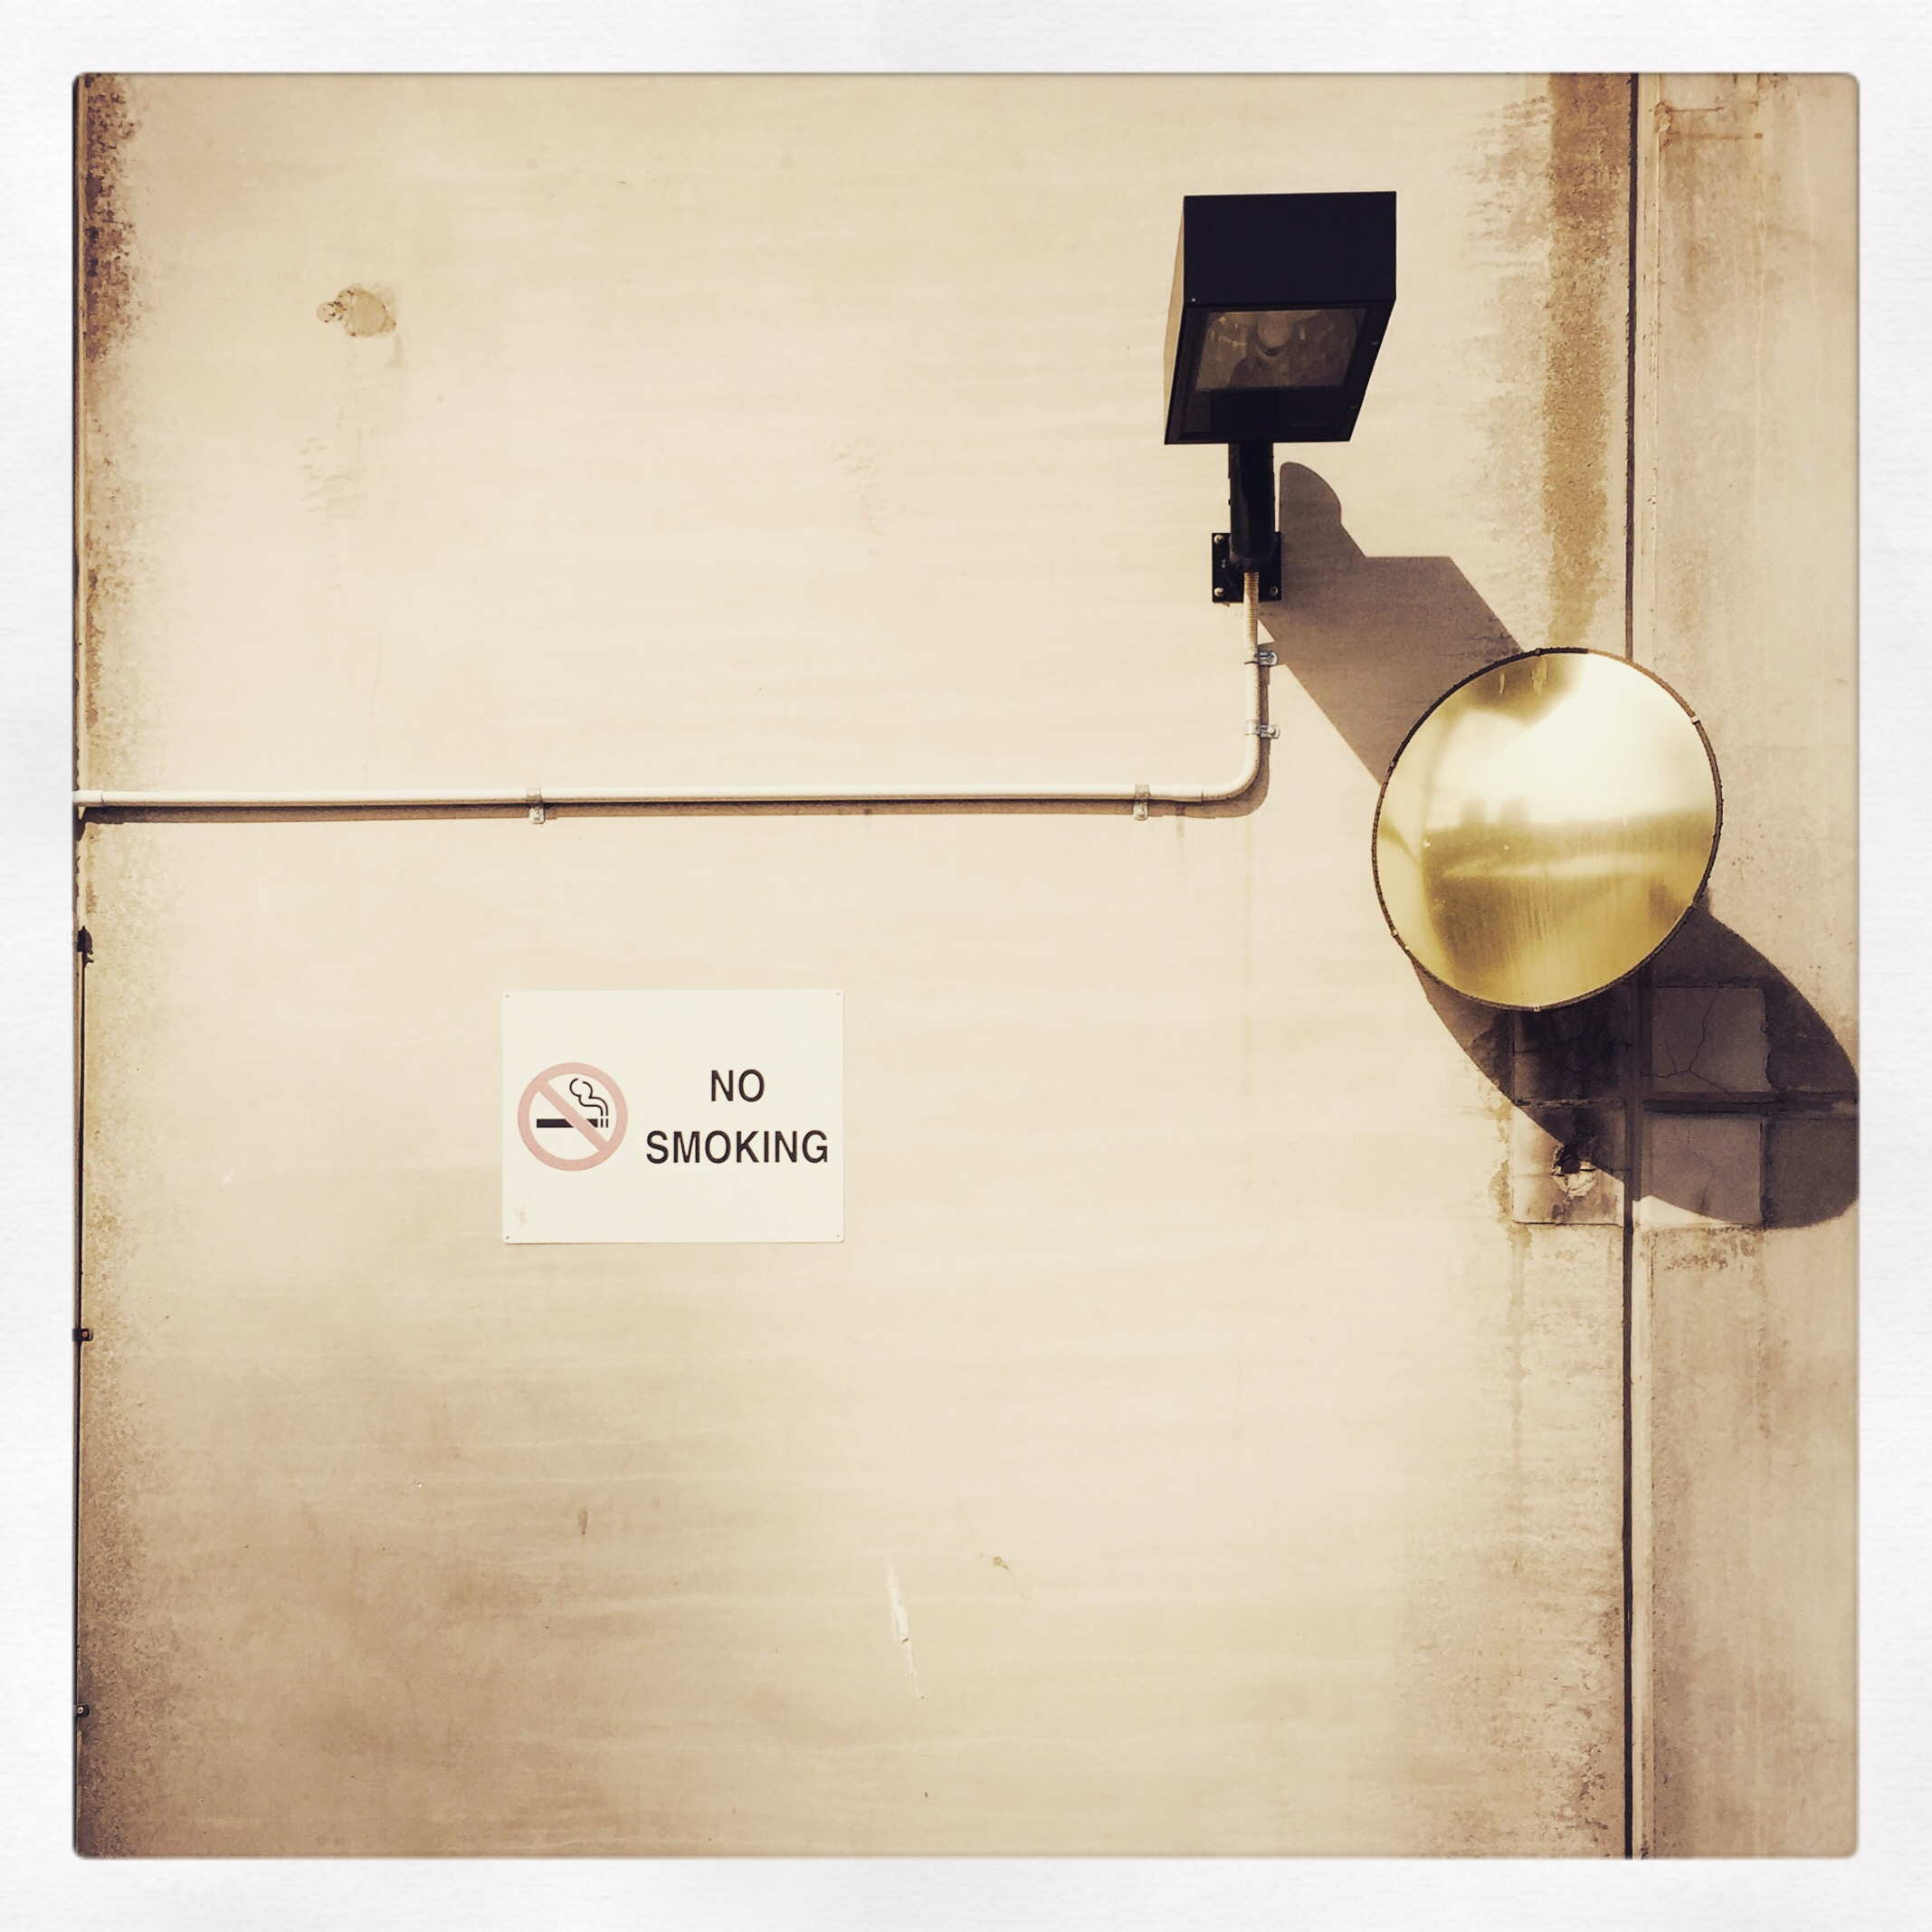 Day 1823. a light, a mirror and a sign…